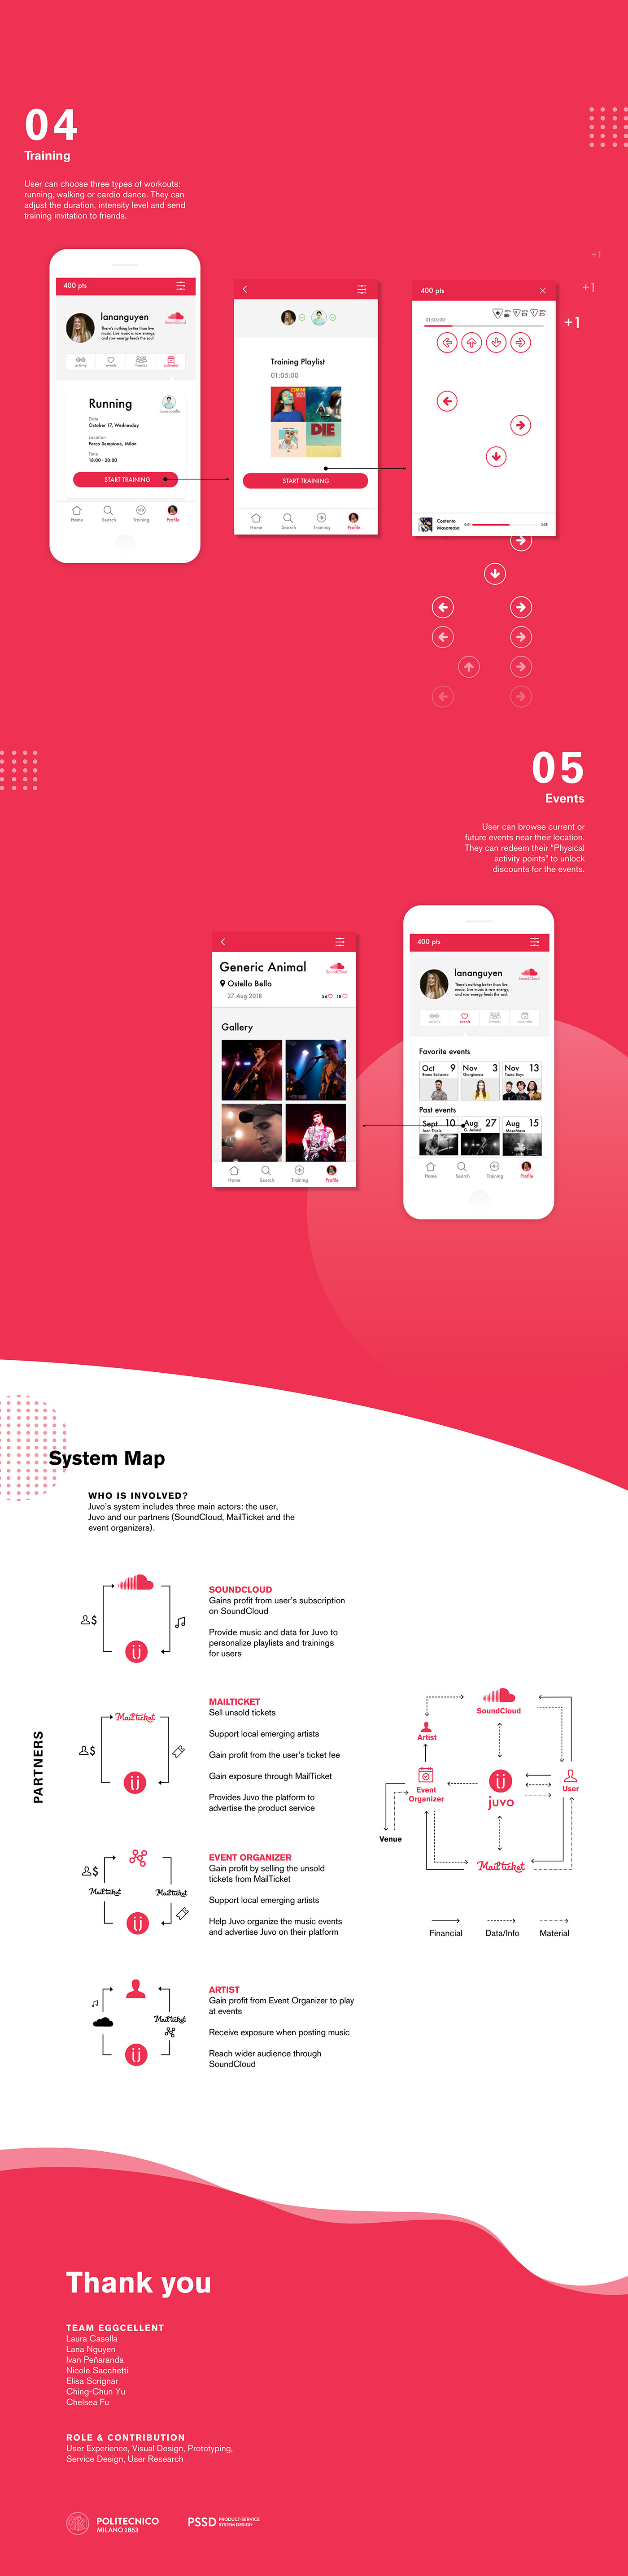 app design product design  Service design ux/ui visual design Health music physical activity sport Well-being